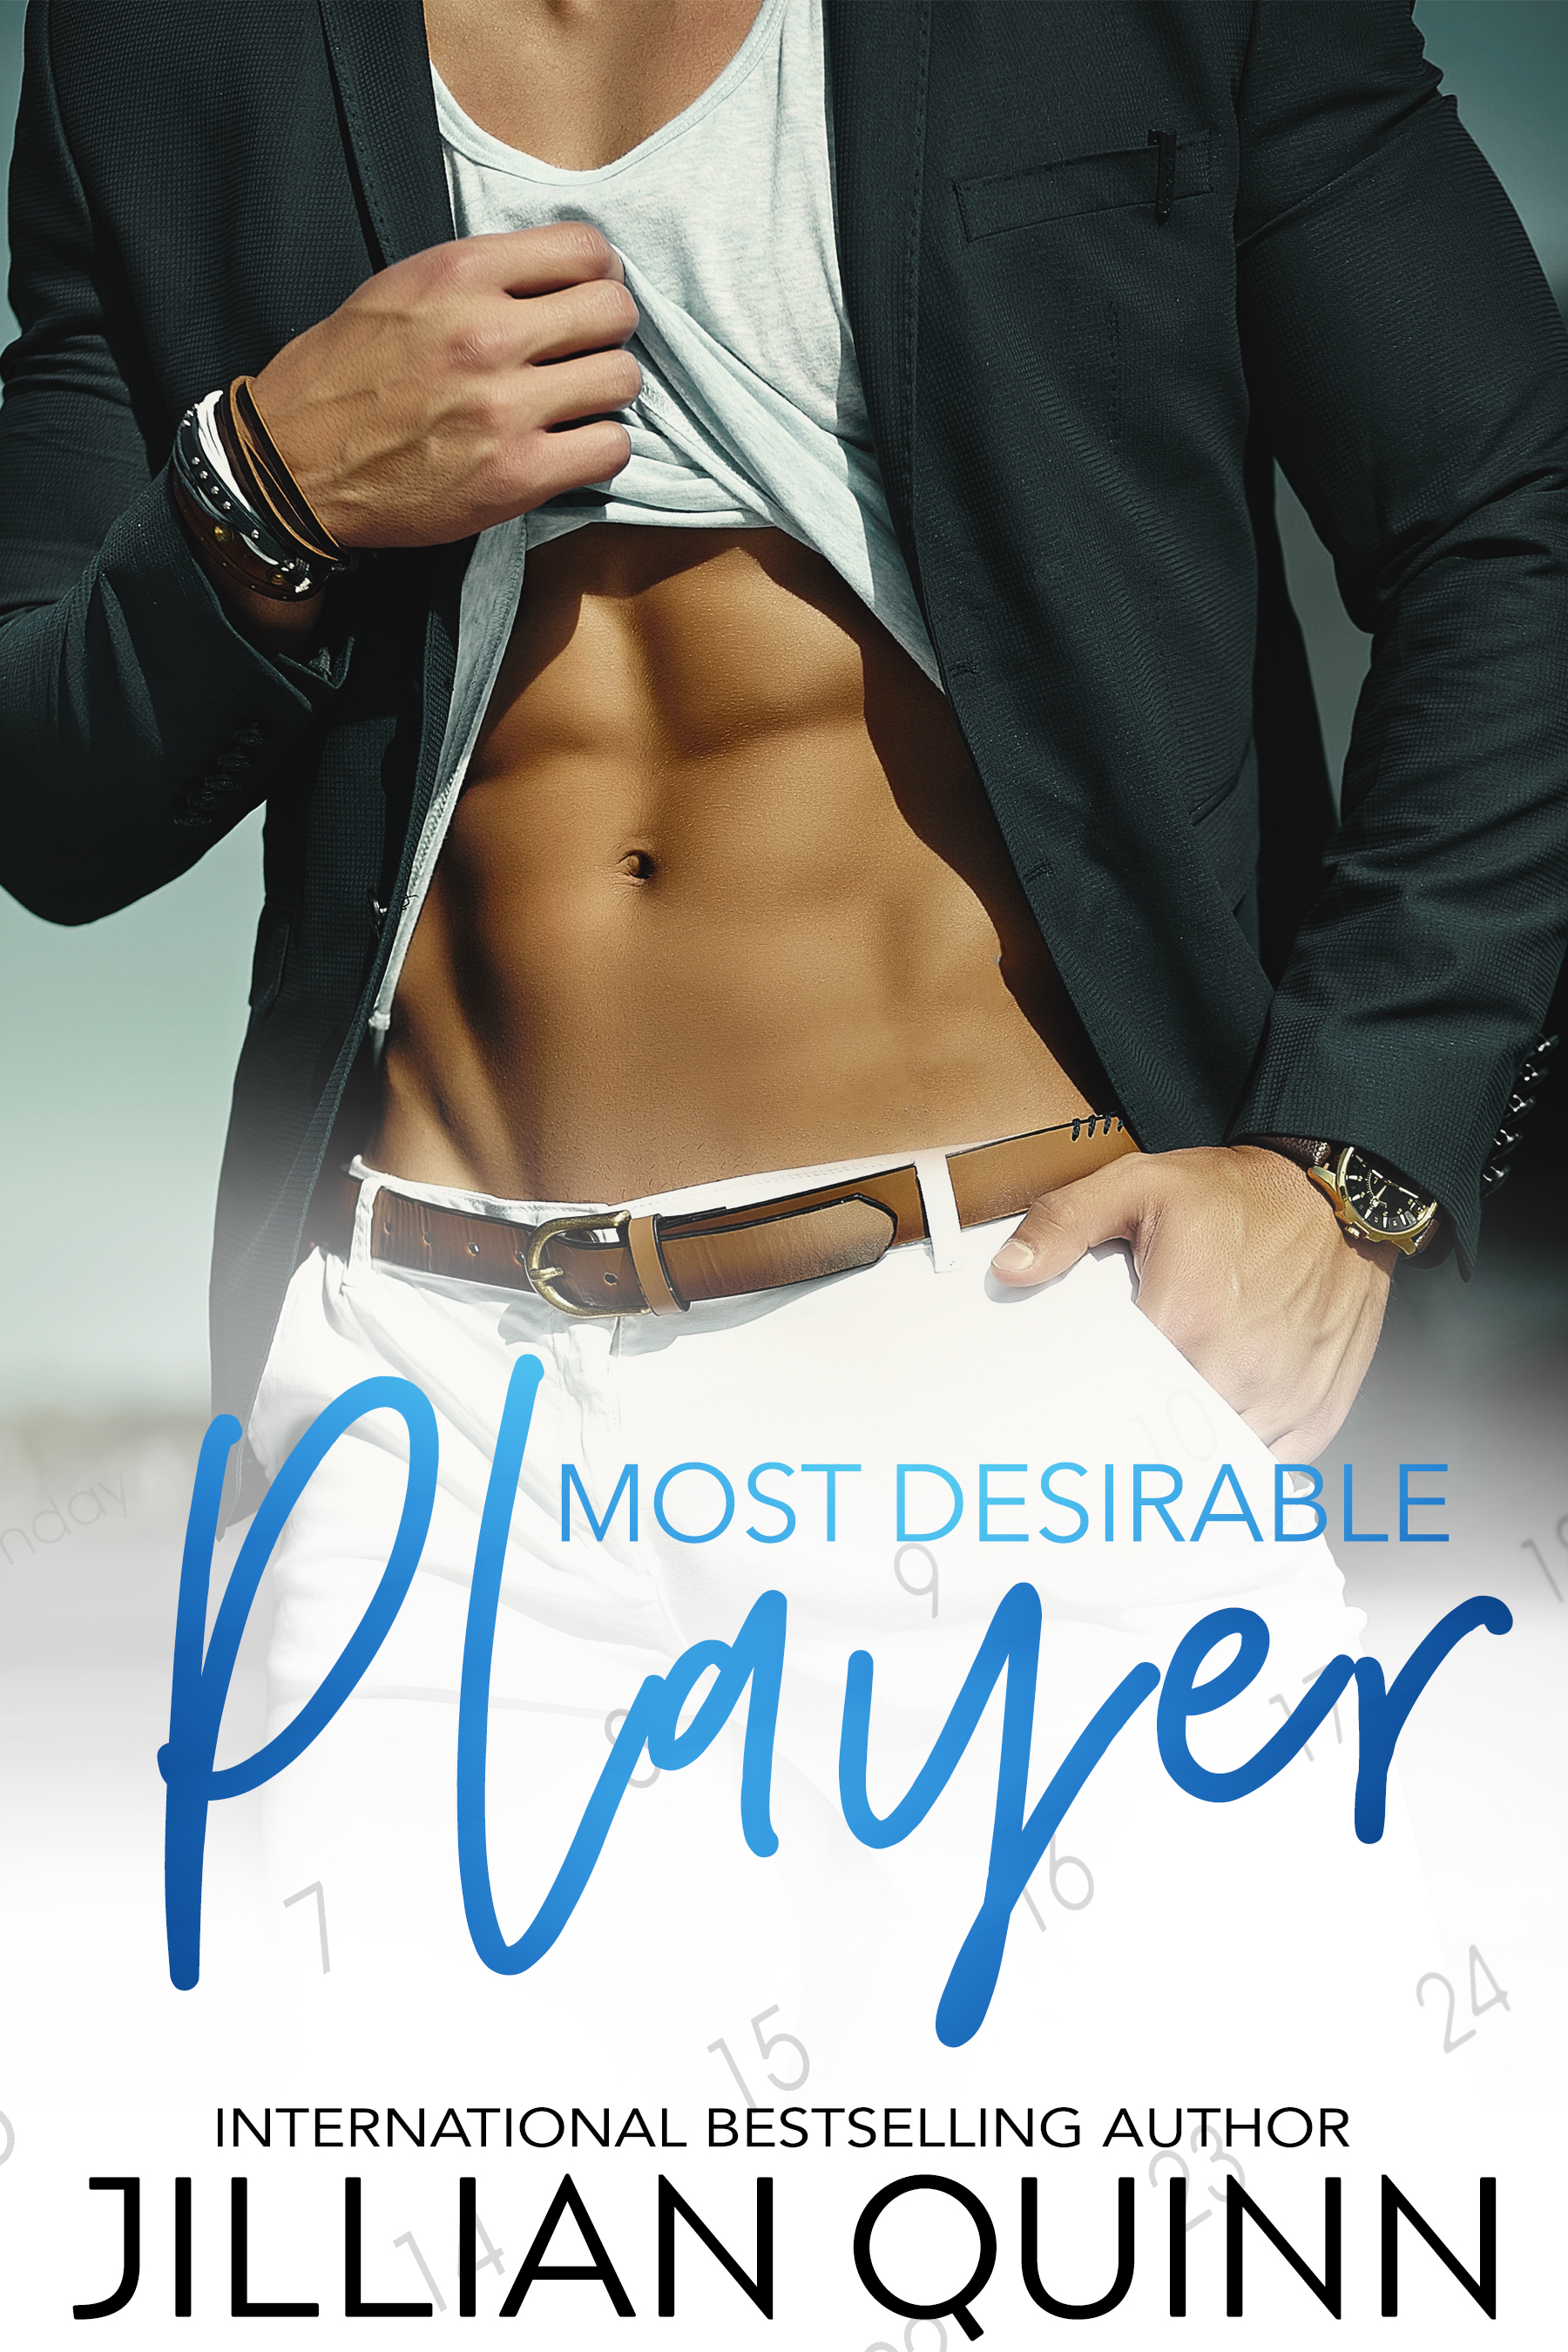 Most Desirable Player